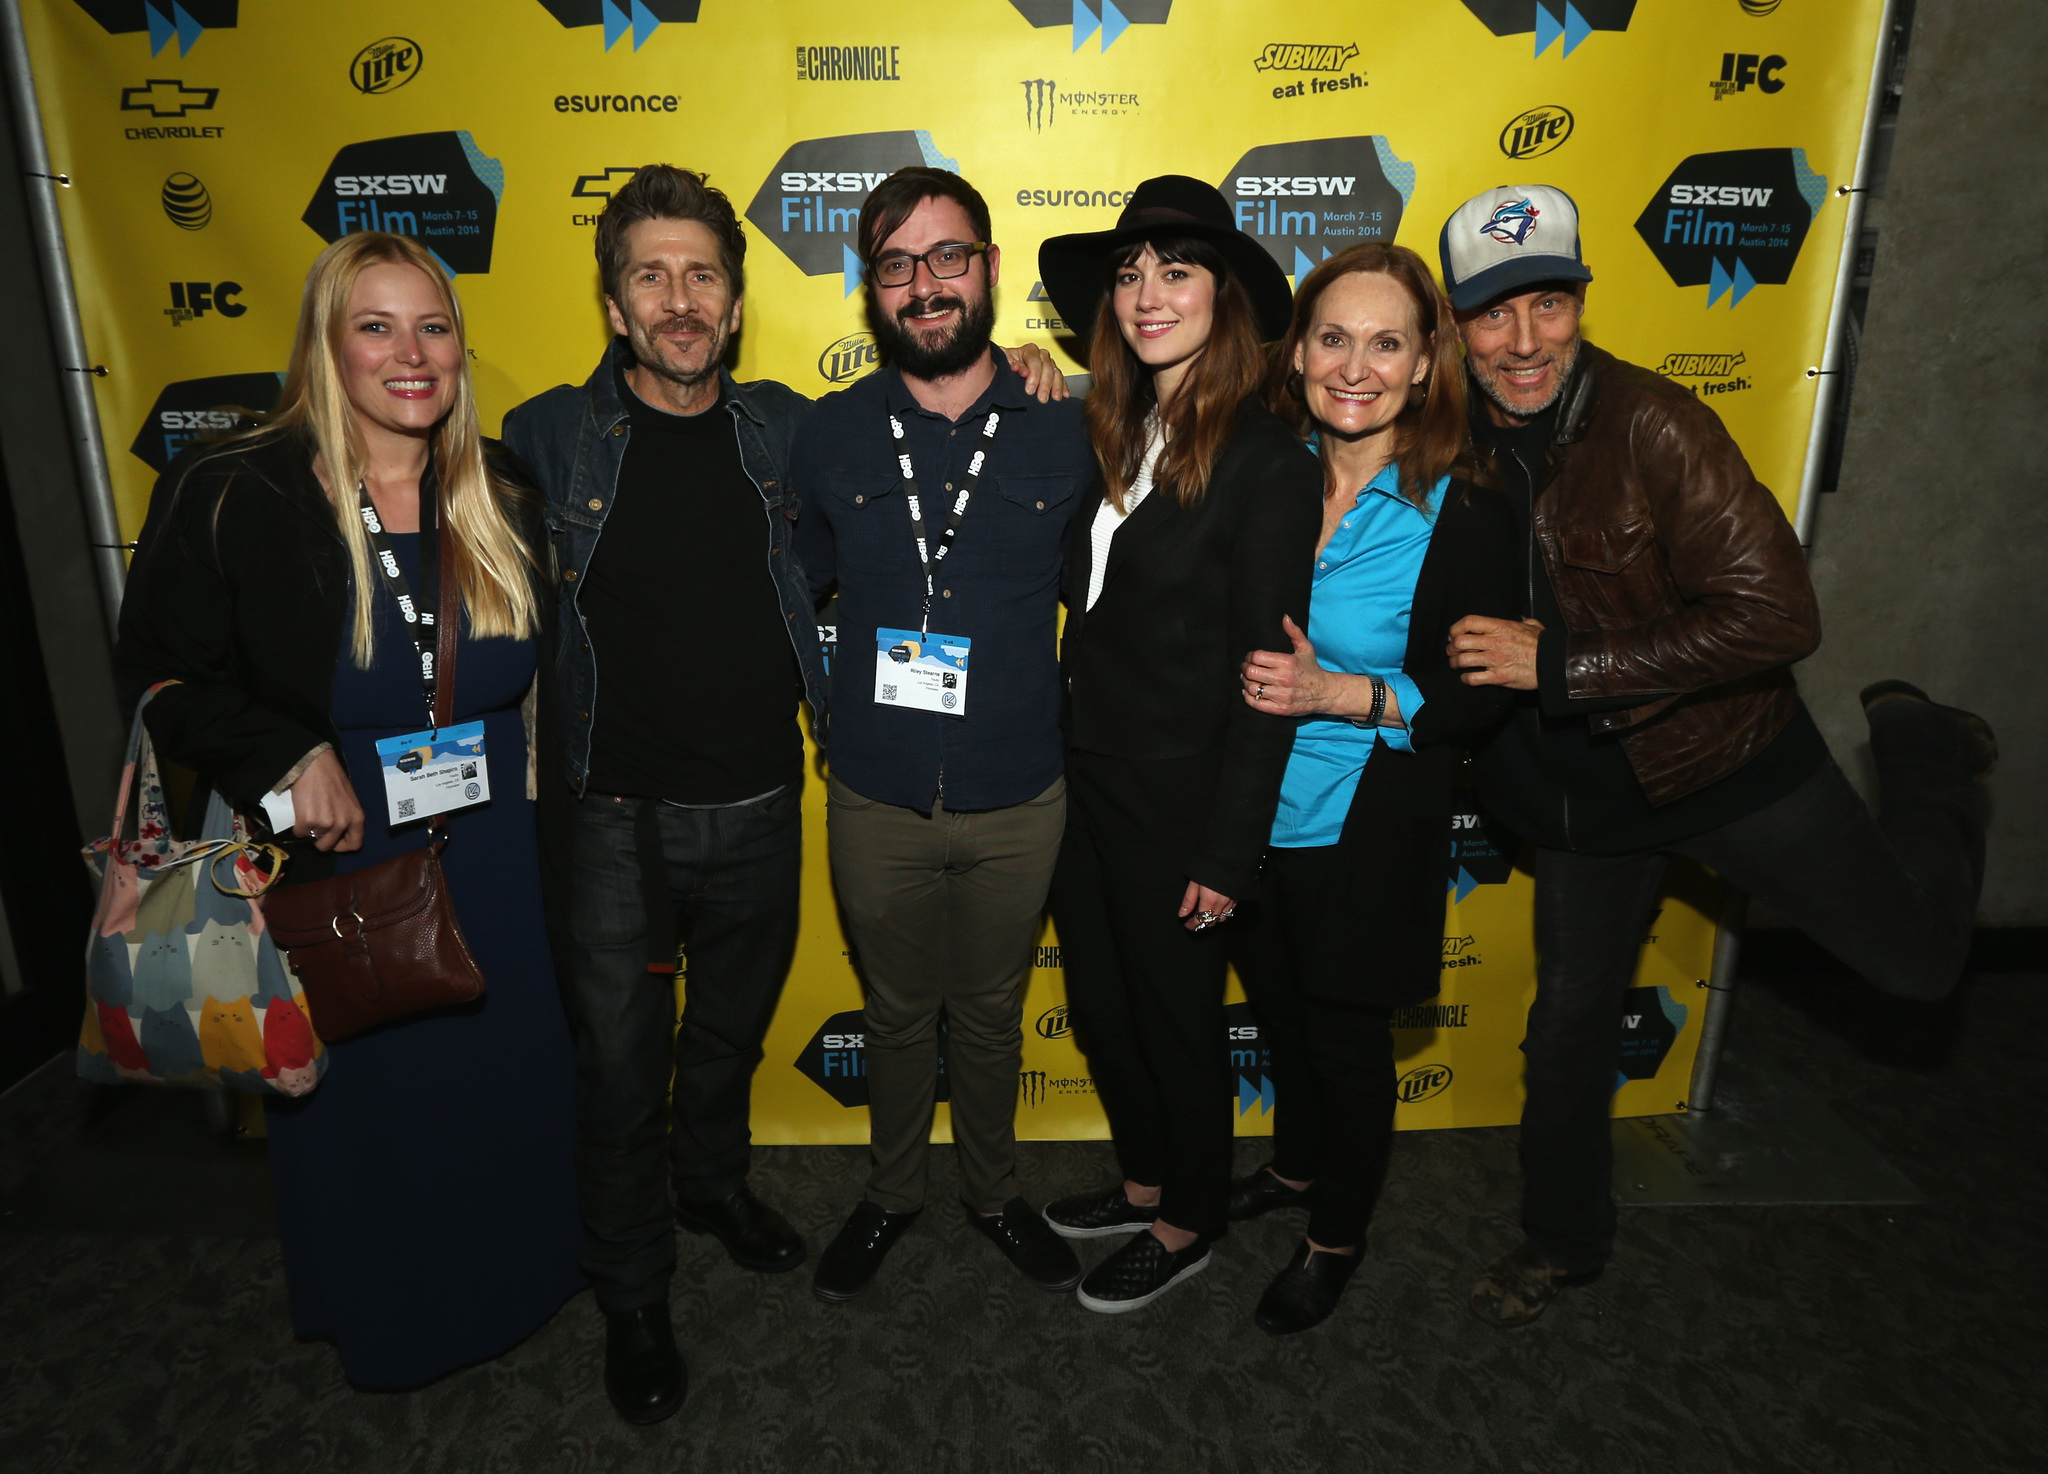 Beth Grant, Jon Gries, Leland Orser, Mary Elizabeth Winstead, and Sarah Beth Shapiro at an event for Faults (2014)